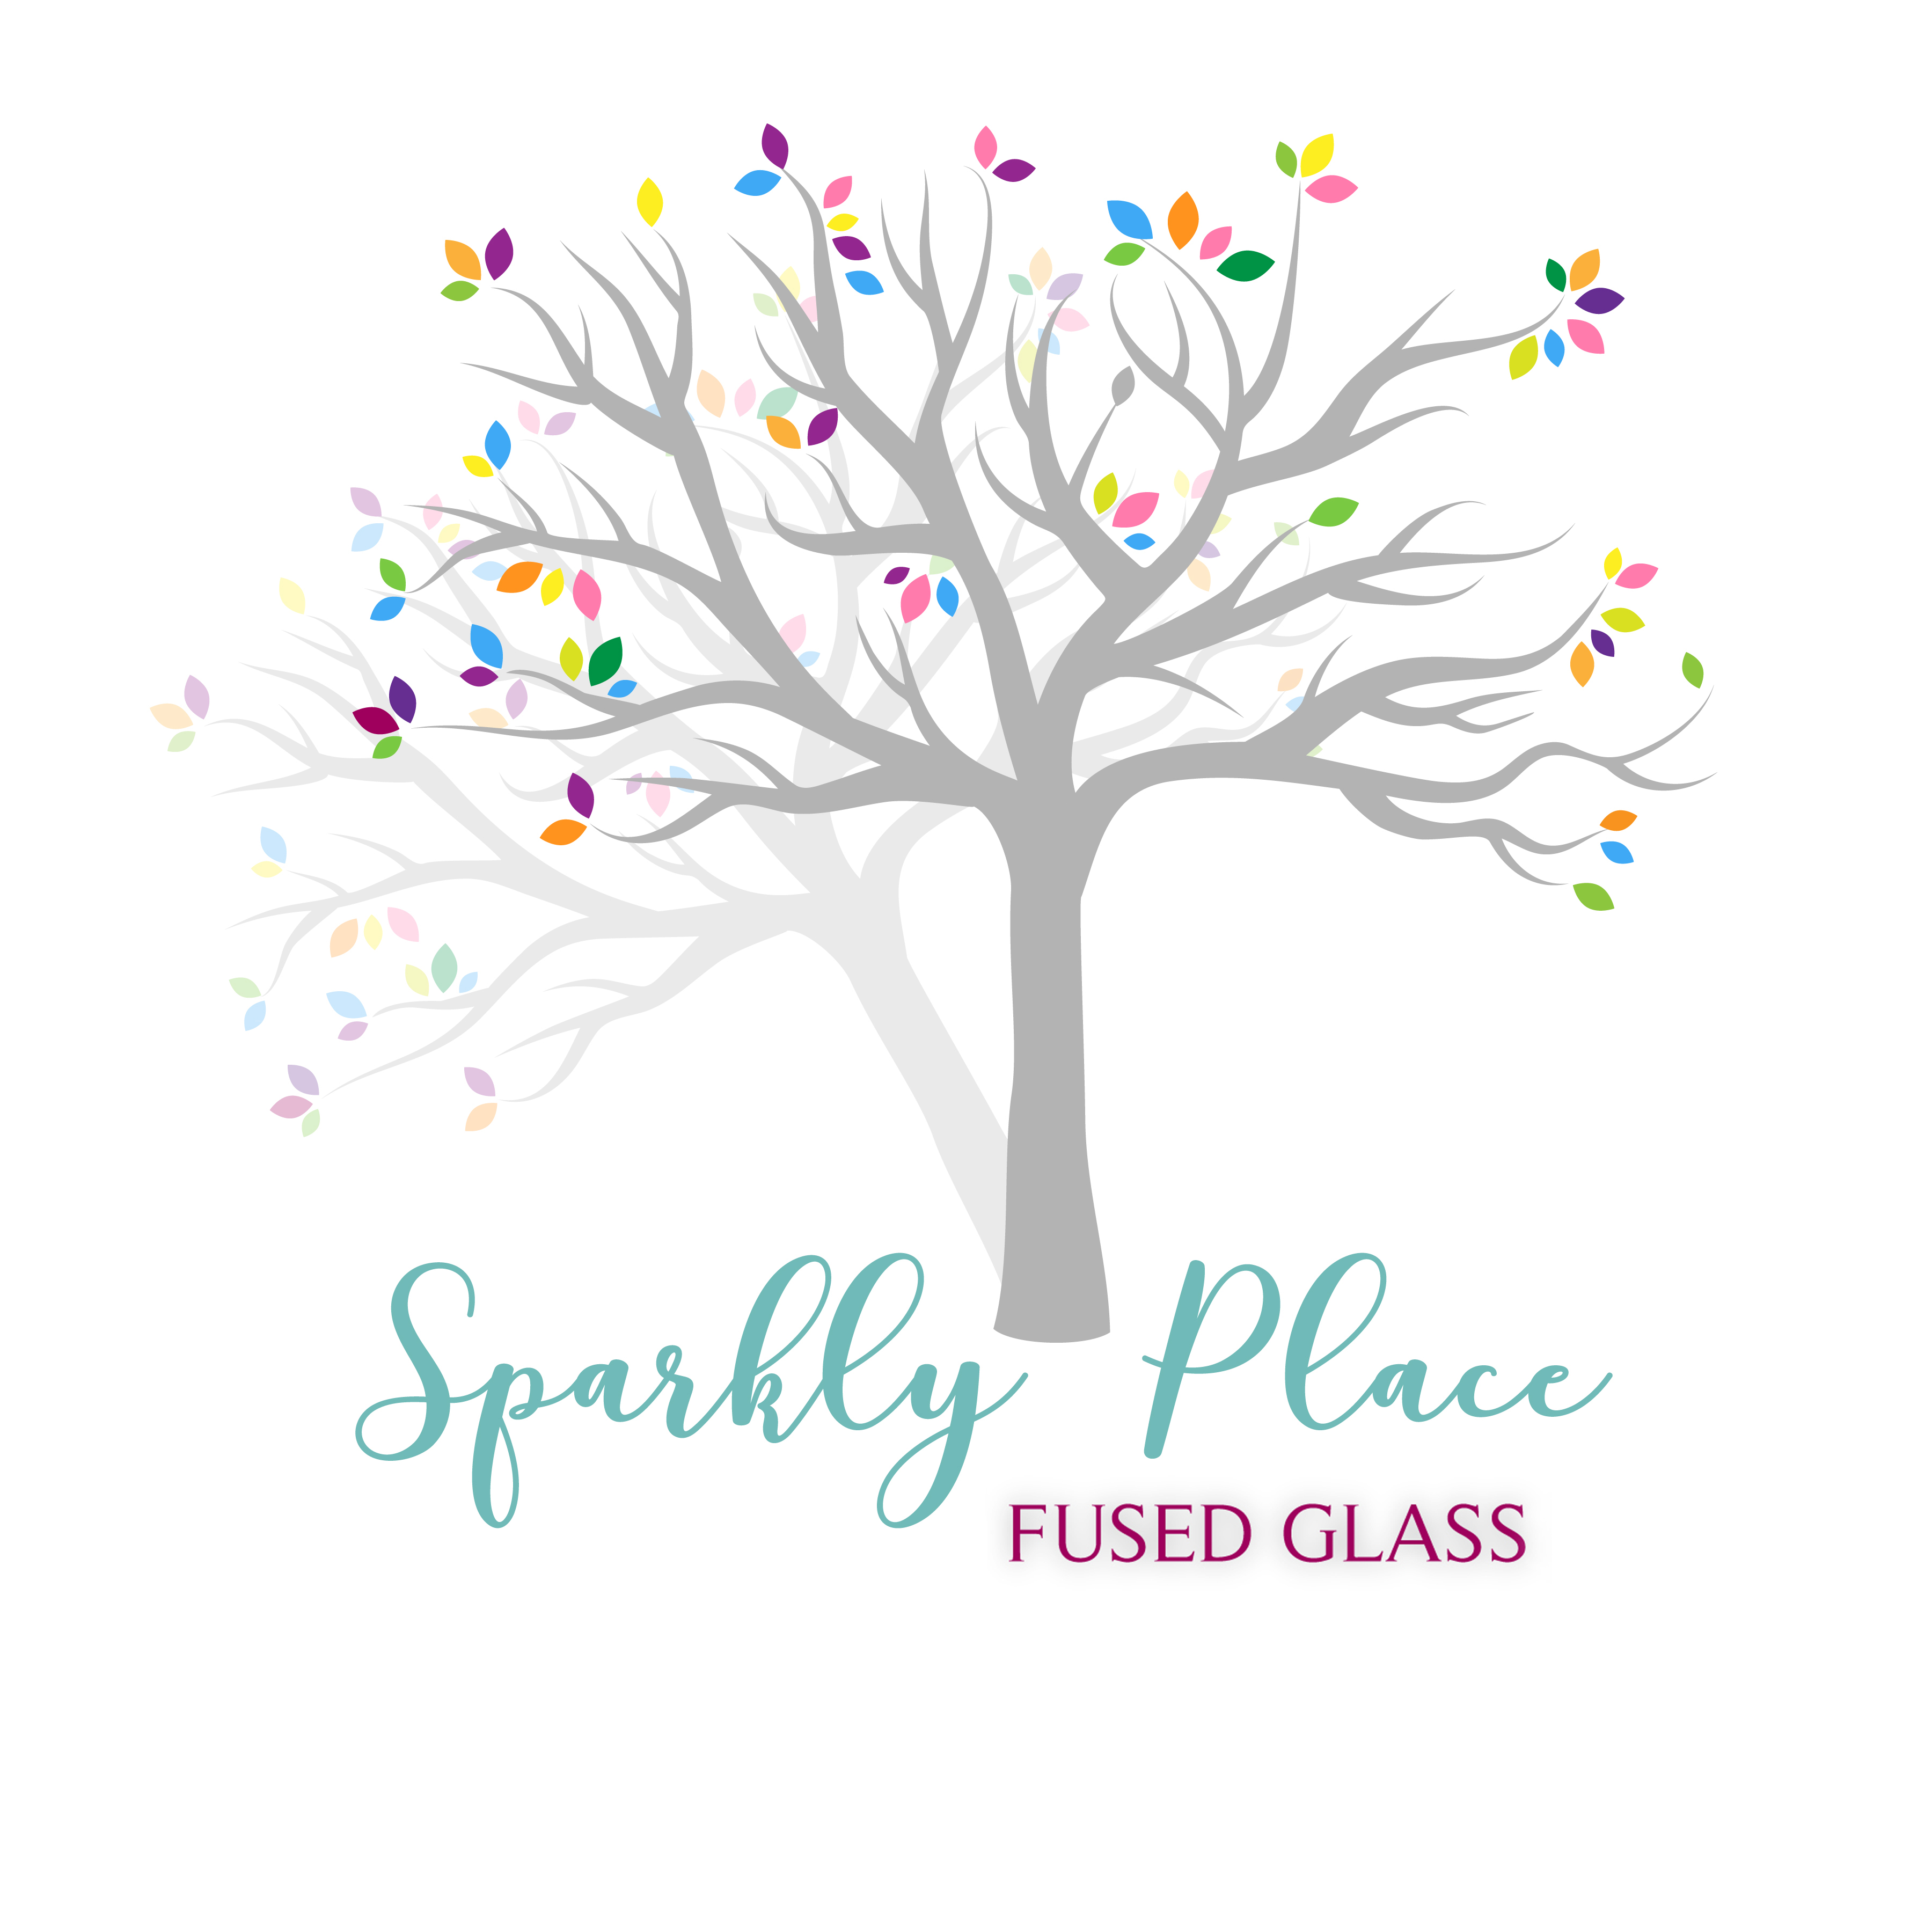 Sparkly Place Fused Glass